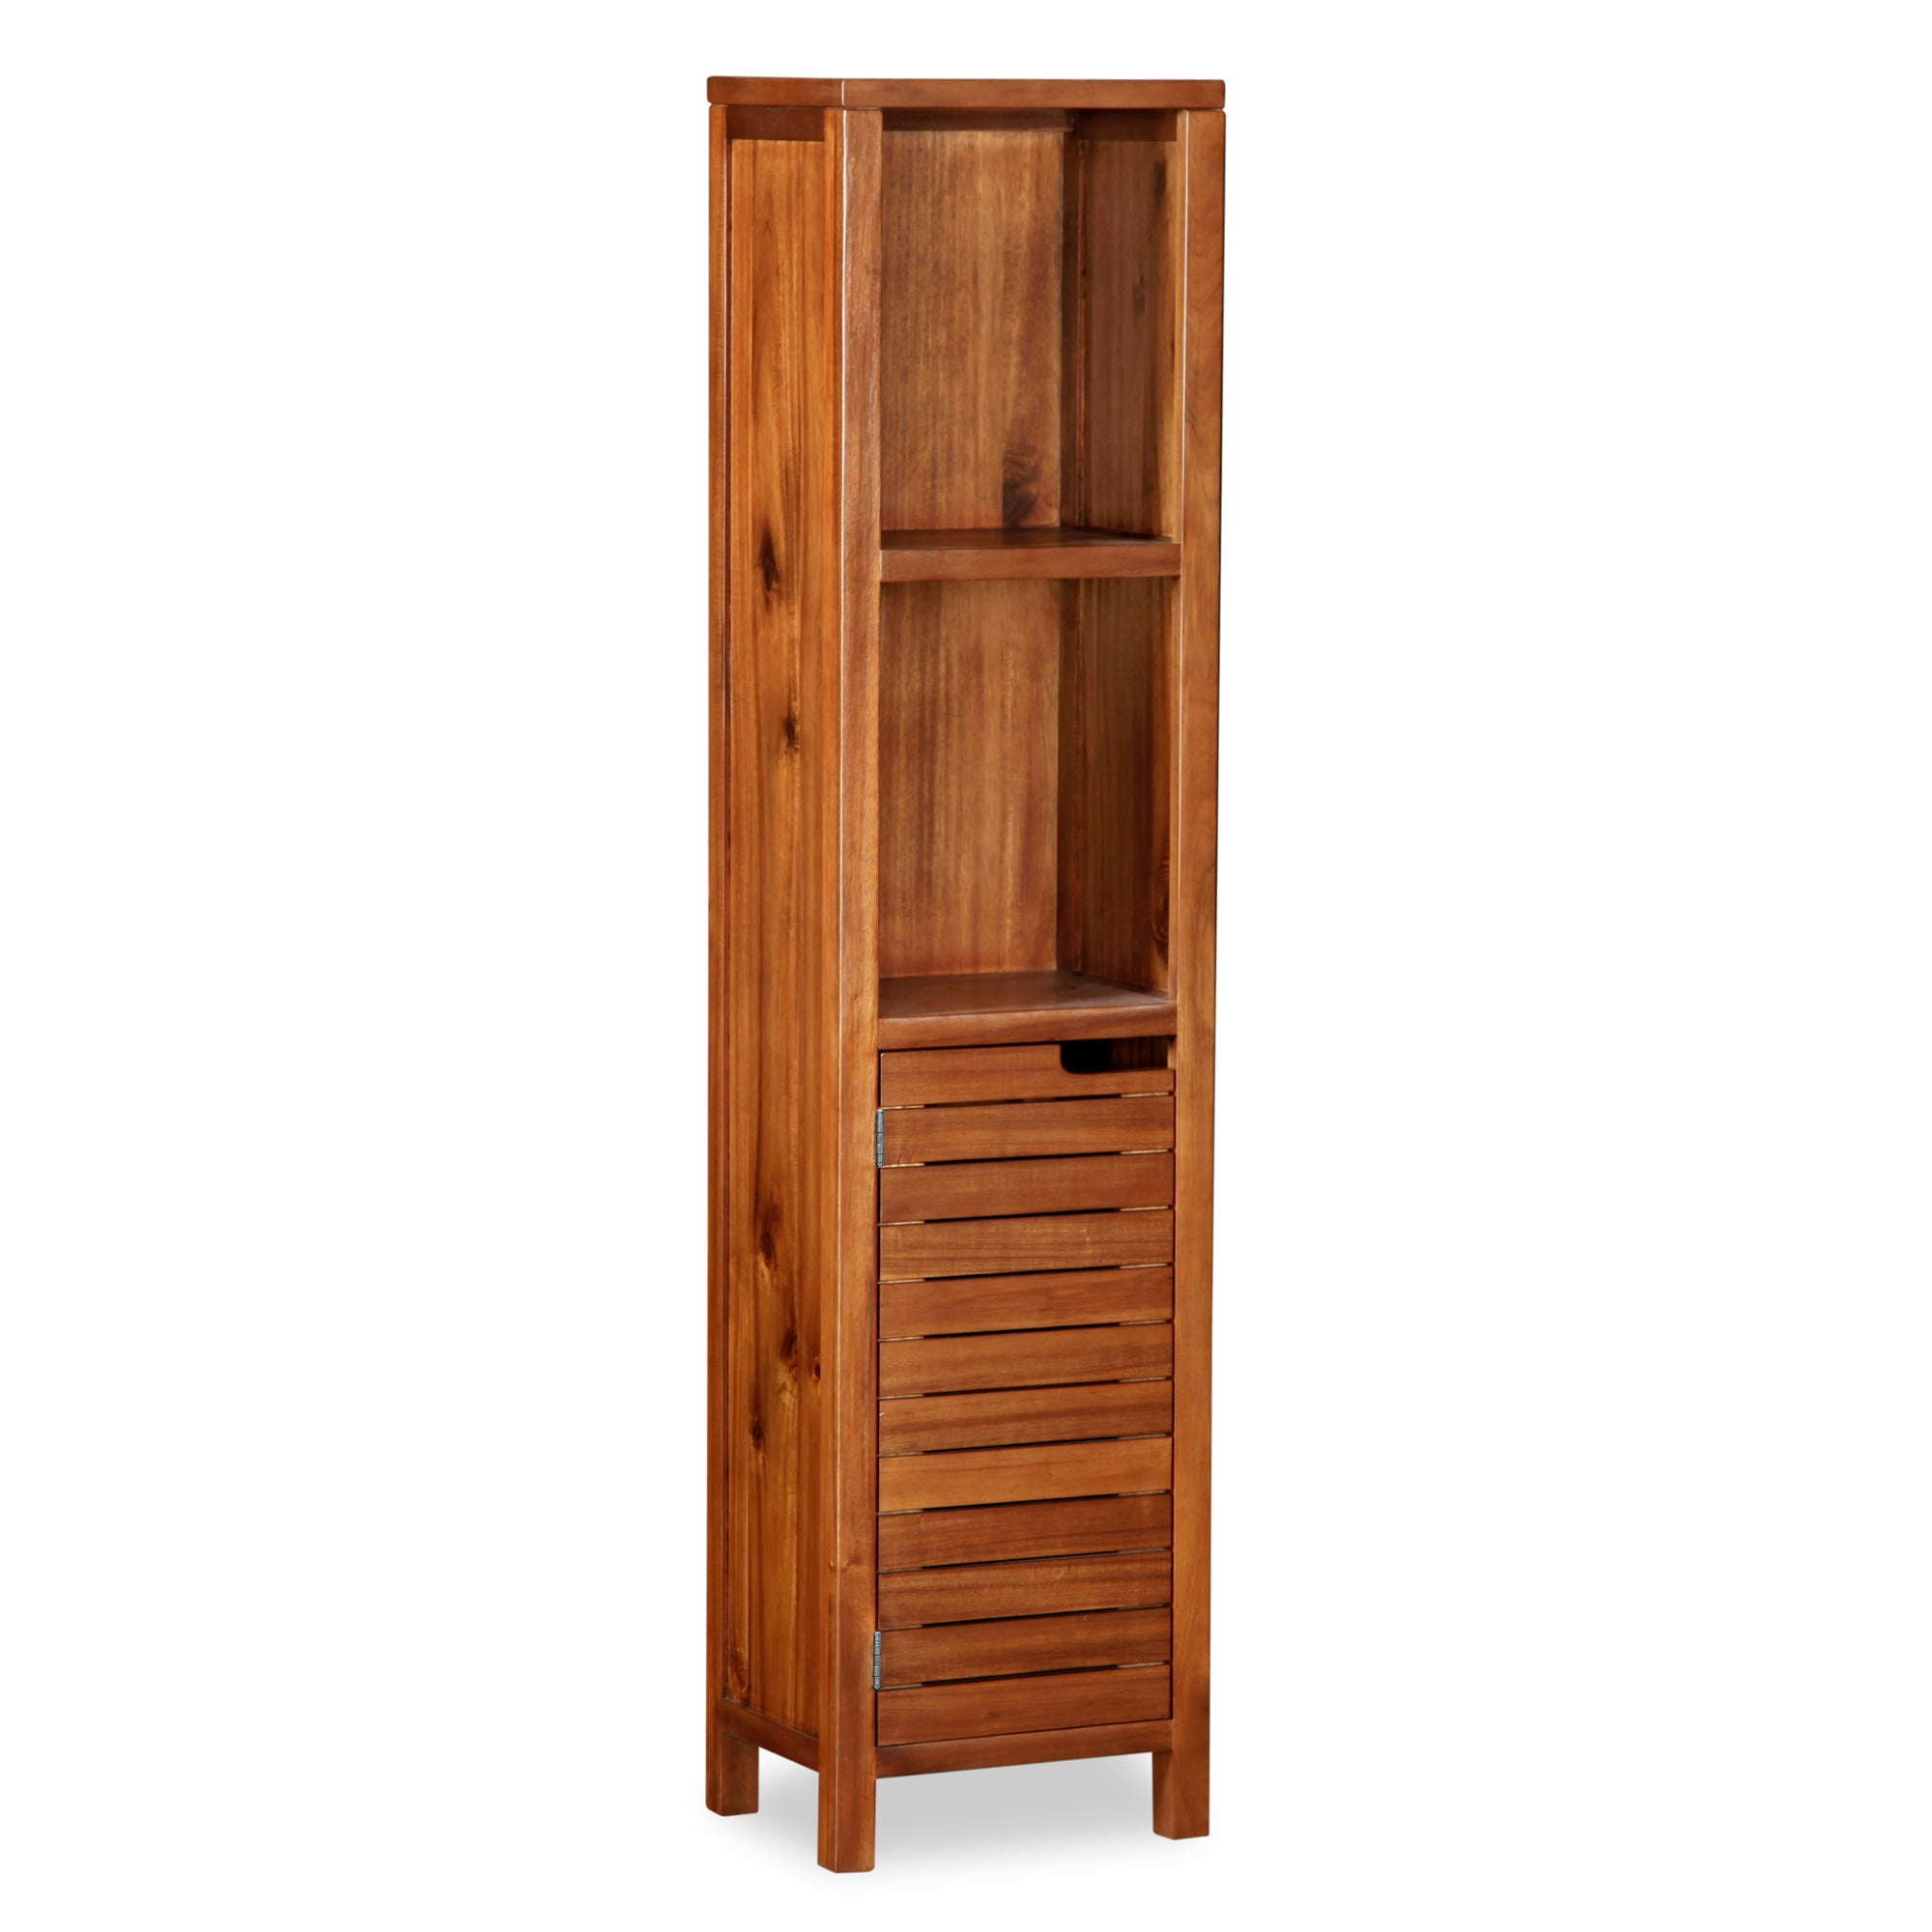 Marseille Acacia Slatted Tall Unit